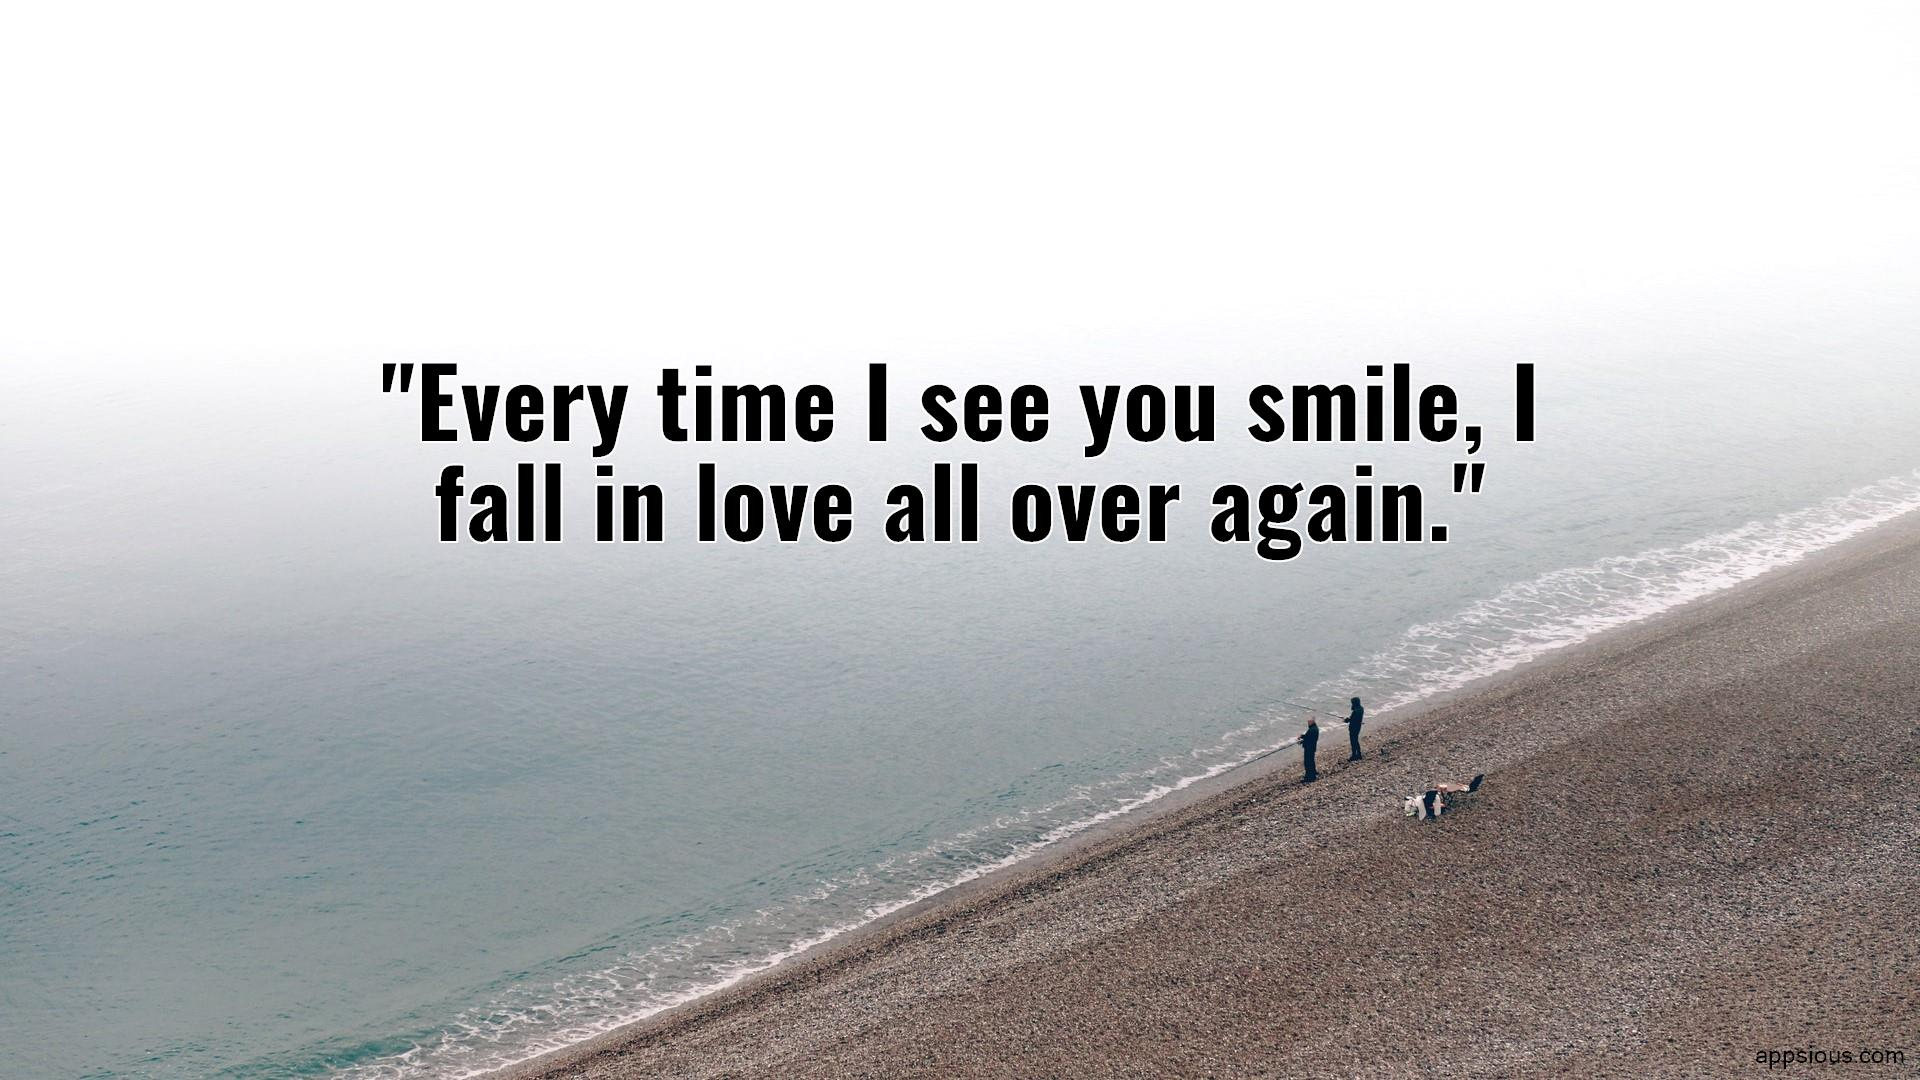 Every time I see you smile, I fall in love all over again.